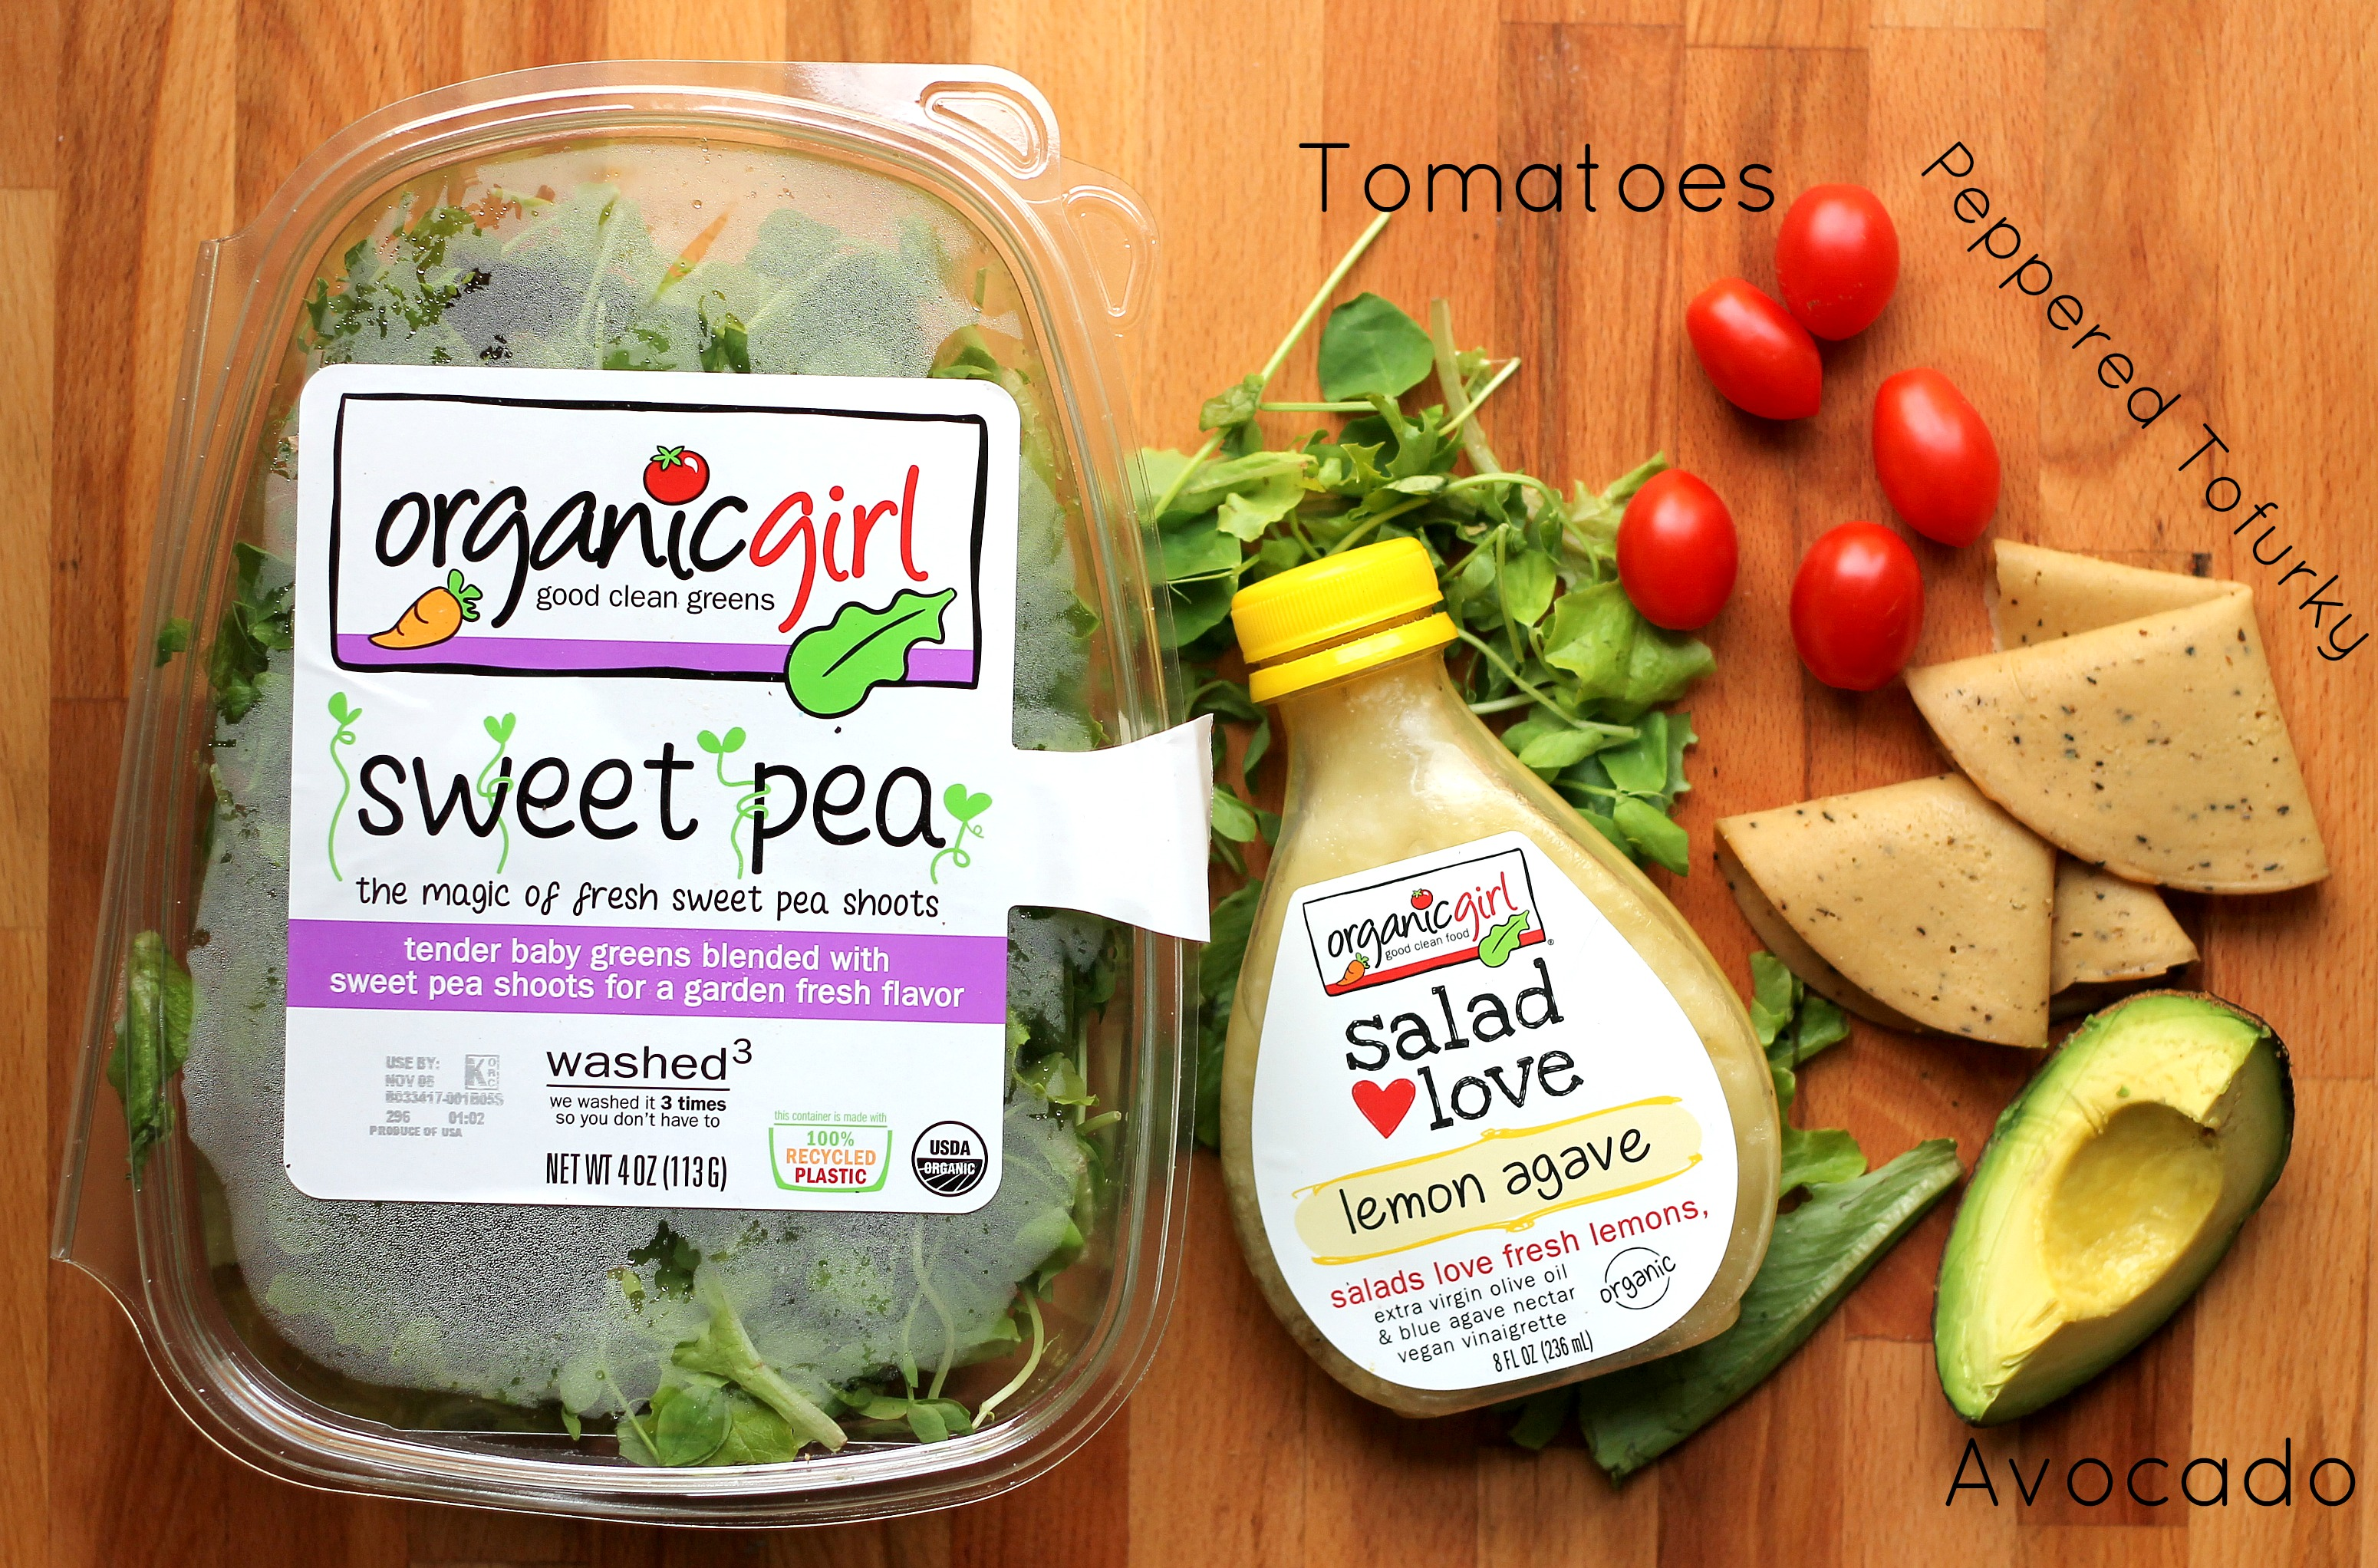 Upgrade Your Everyday Salad with organicgirl's new Sweet Pea and PEPPERGREENS